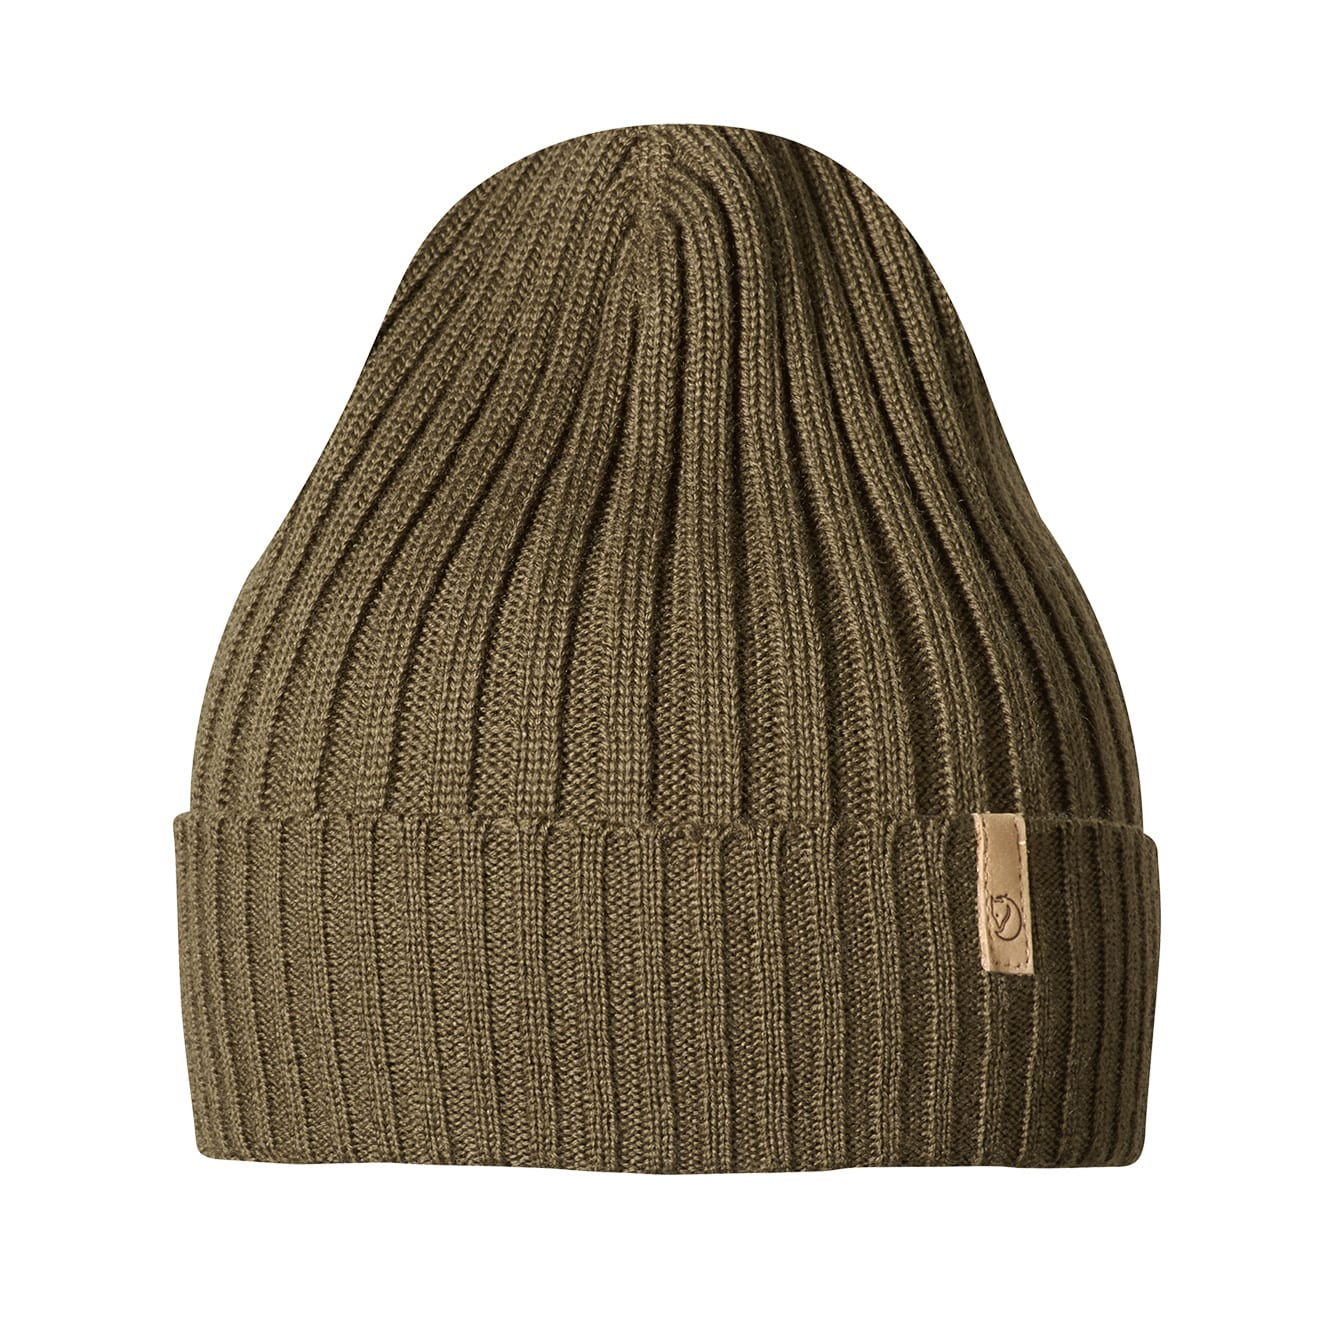 62bf1883236 Fjallraven Wool Hat No.1 Dark Olive. £45.00 View product · View Product · Barbour  Patchwork Flat Cap Navy Mix